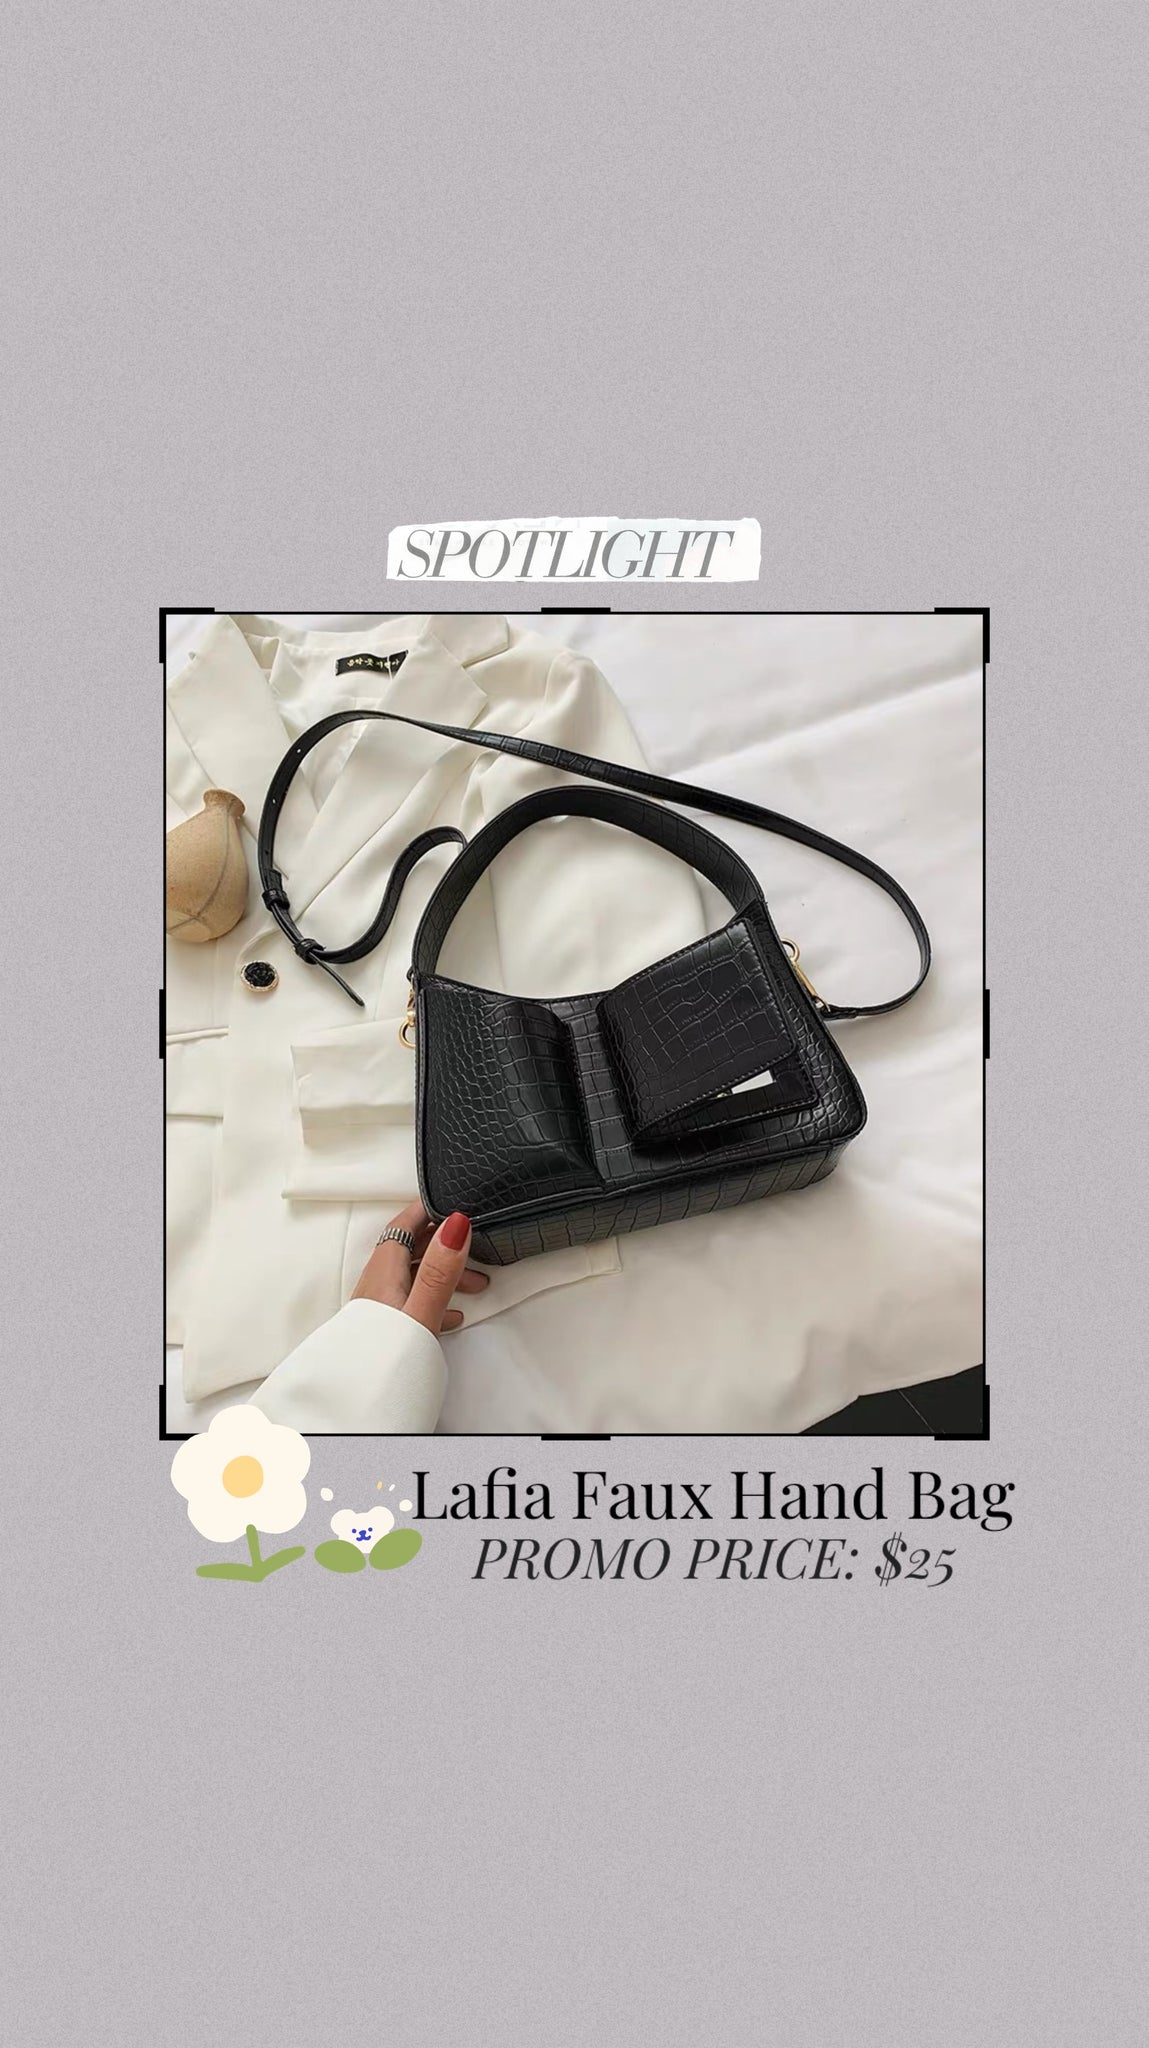 Lafia Faux Hand Bag